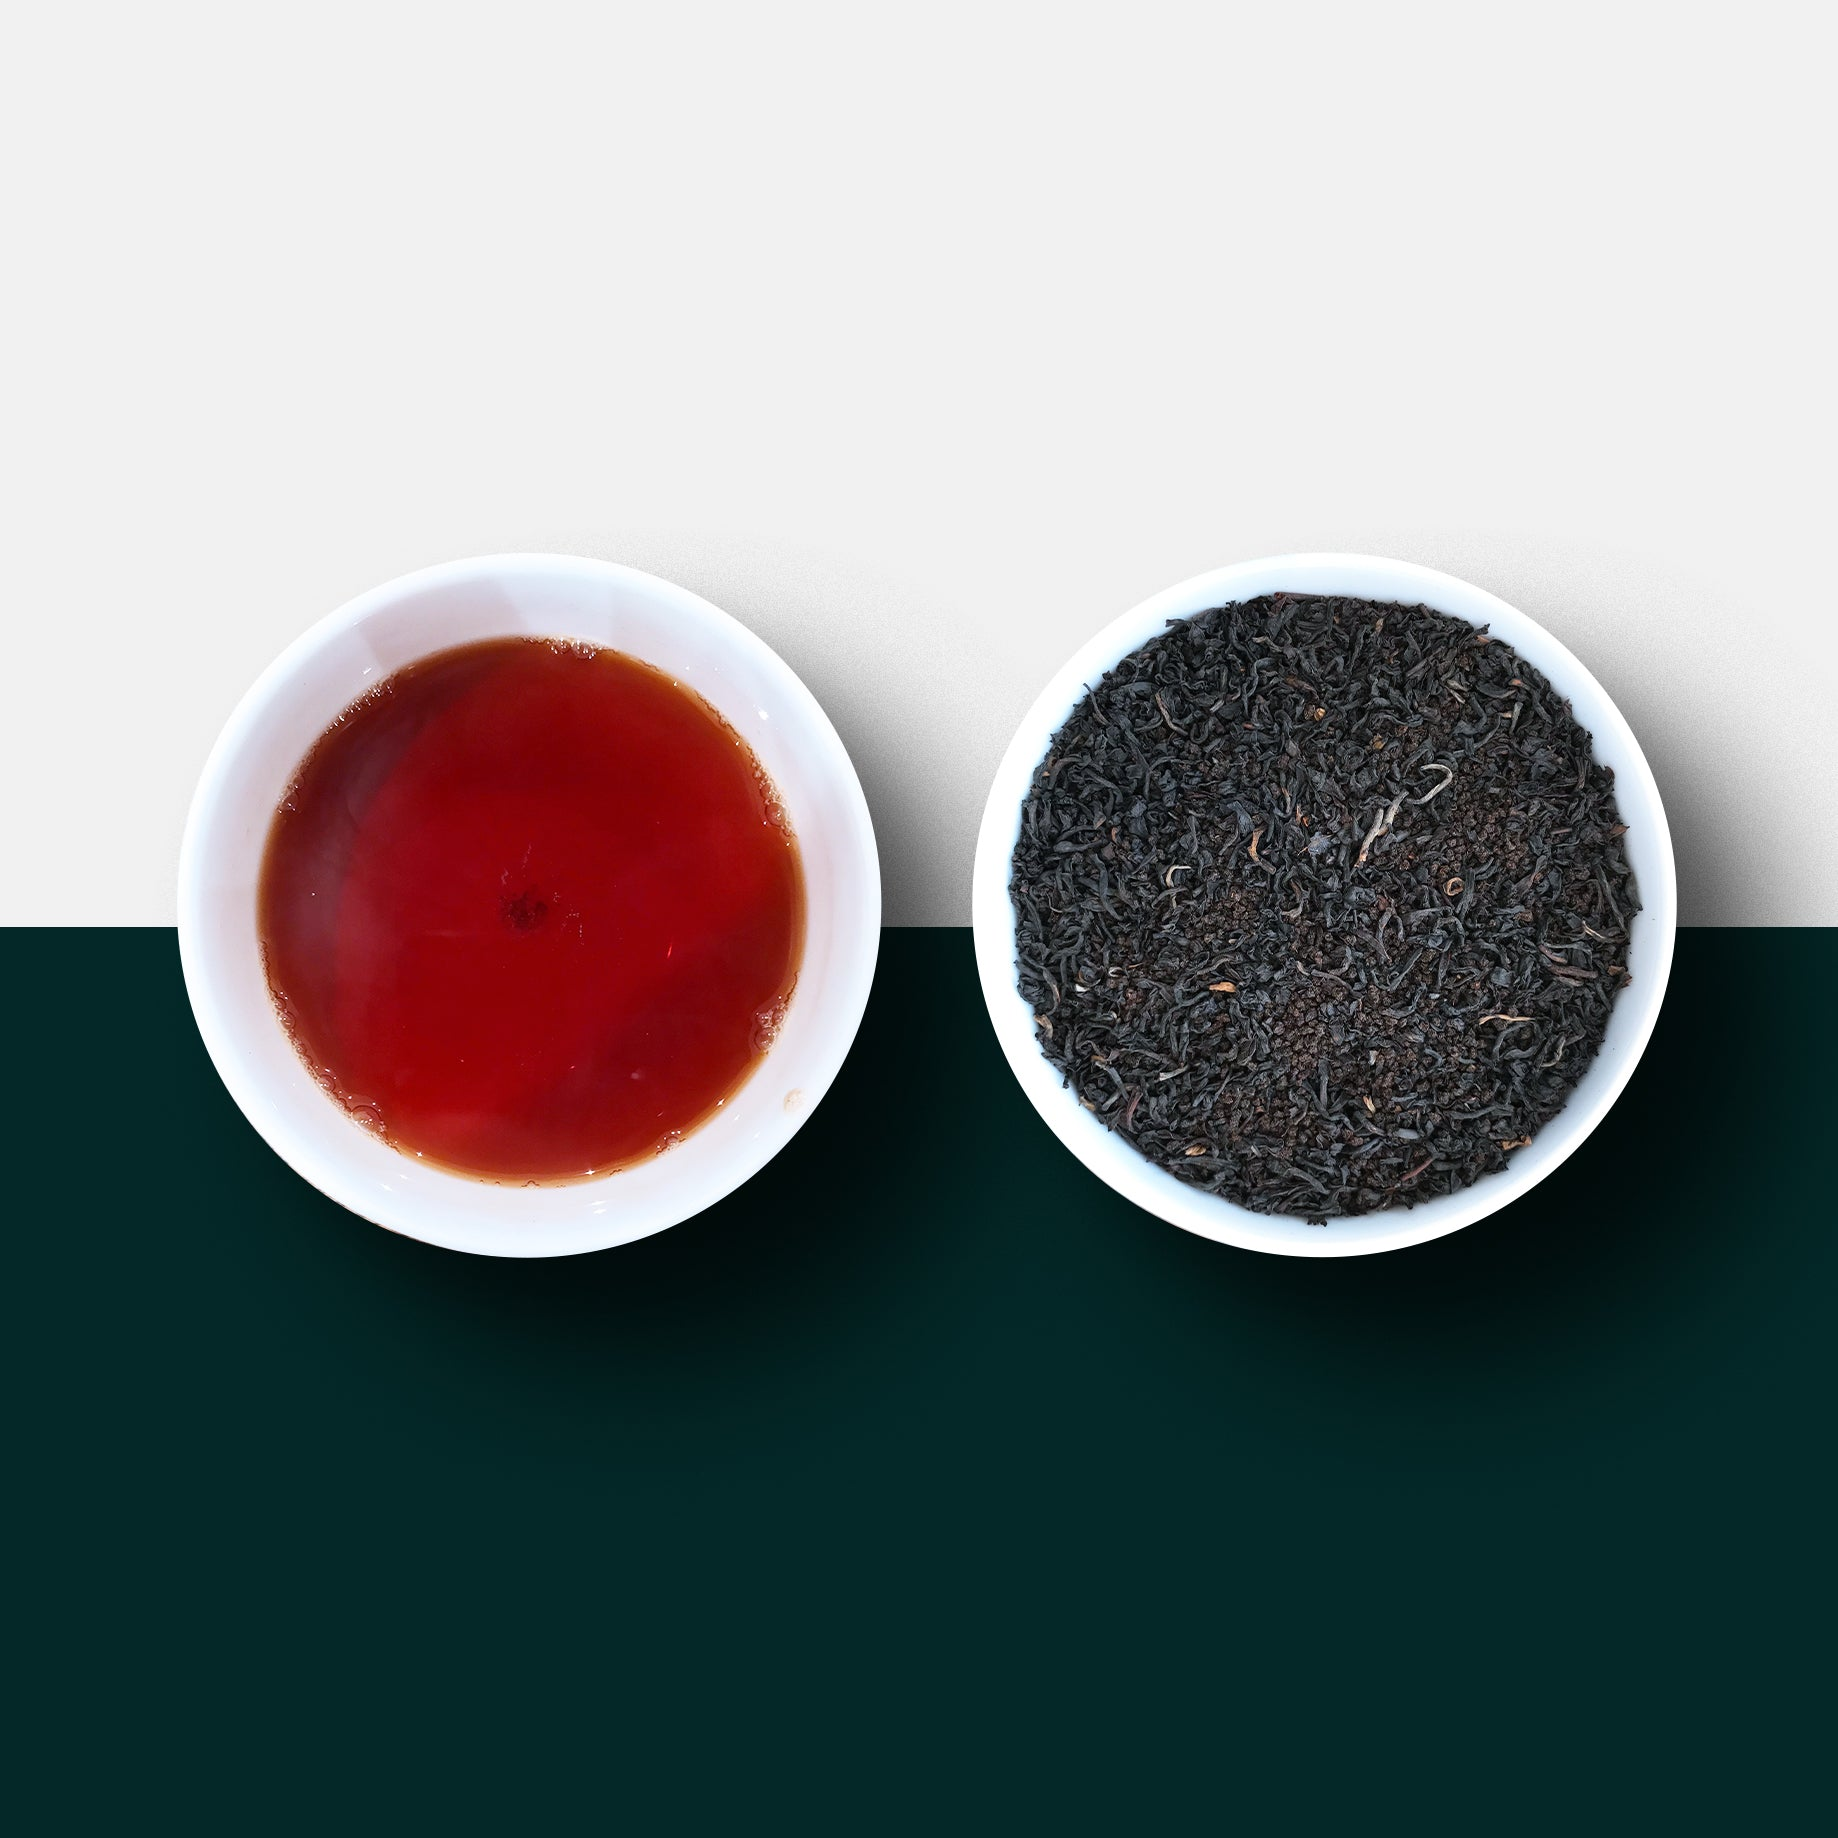 Black tea - the Brexit Blend loose leaf tea and liquor